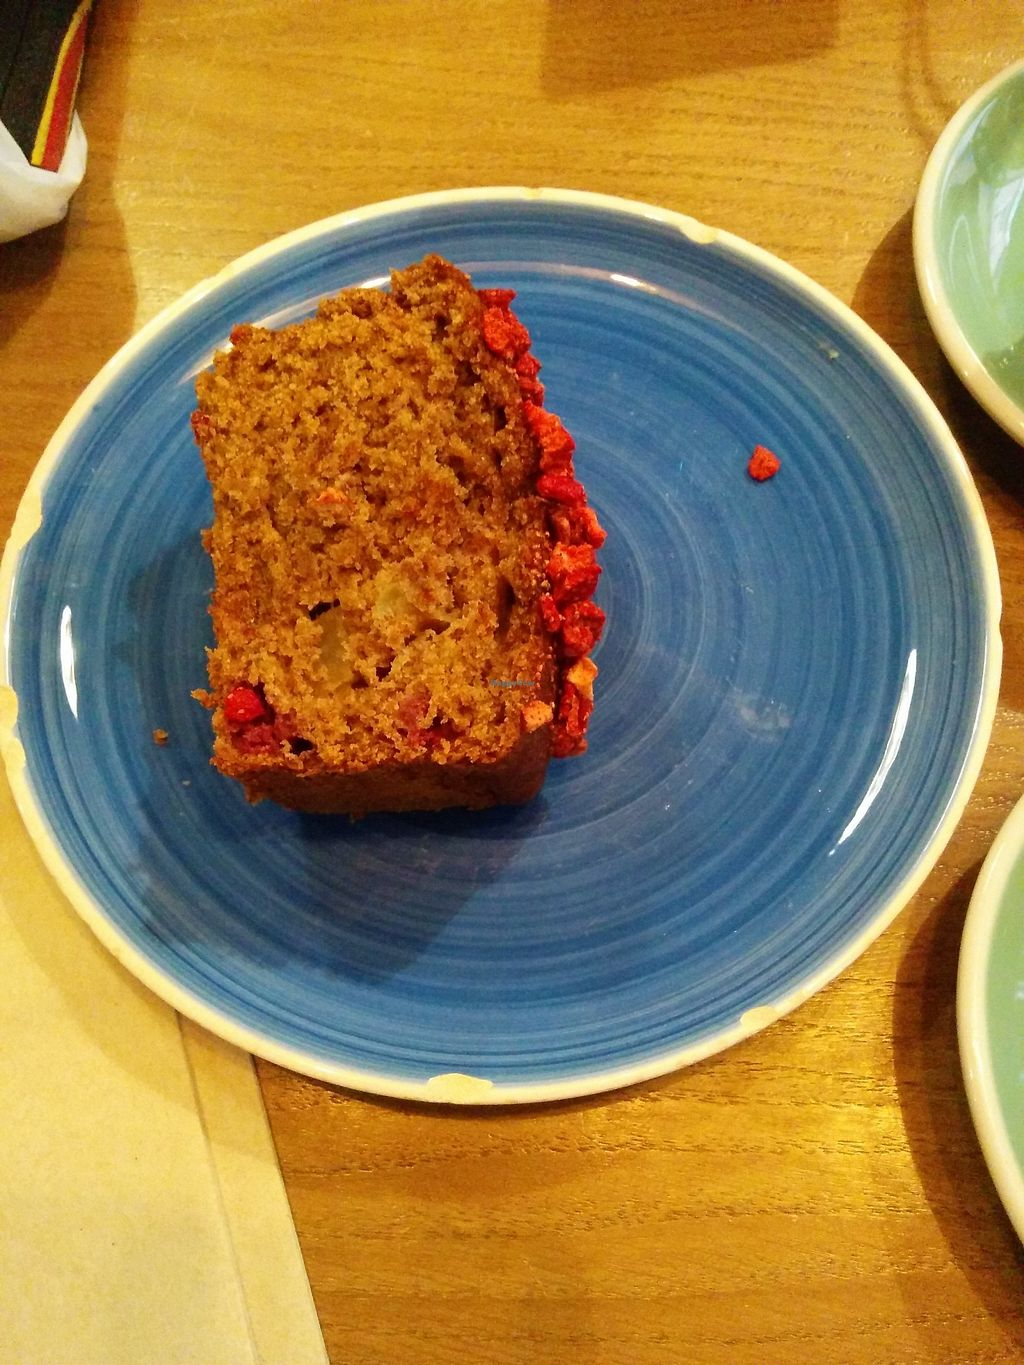 """Photo of Pum Pum Cafe  by <a href=""""/members/profile/FlokiTheCat"""">FlokiTheCat</a> <br/>Vegan cake <br/> October 6, 2017  - <a href='/contact/abuse/image/73911/312370'>Report</a>"""